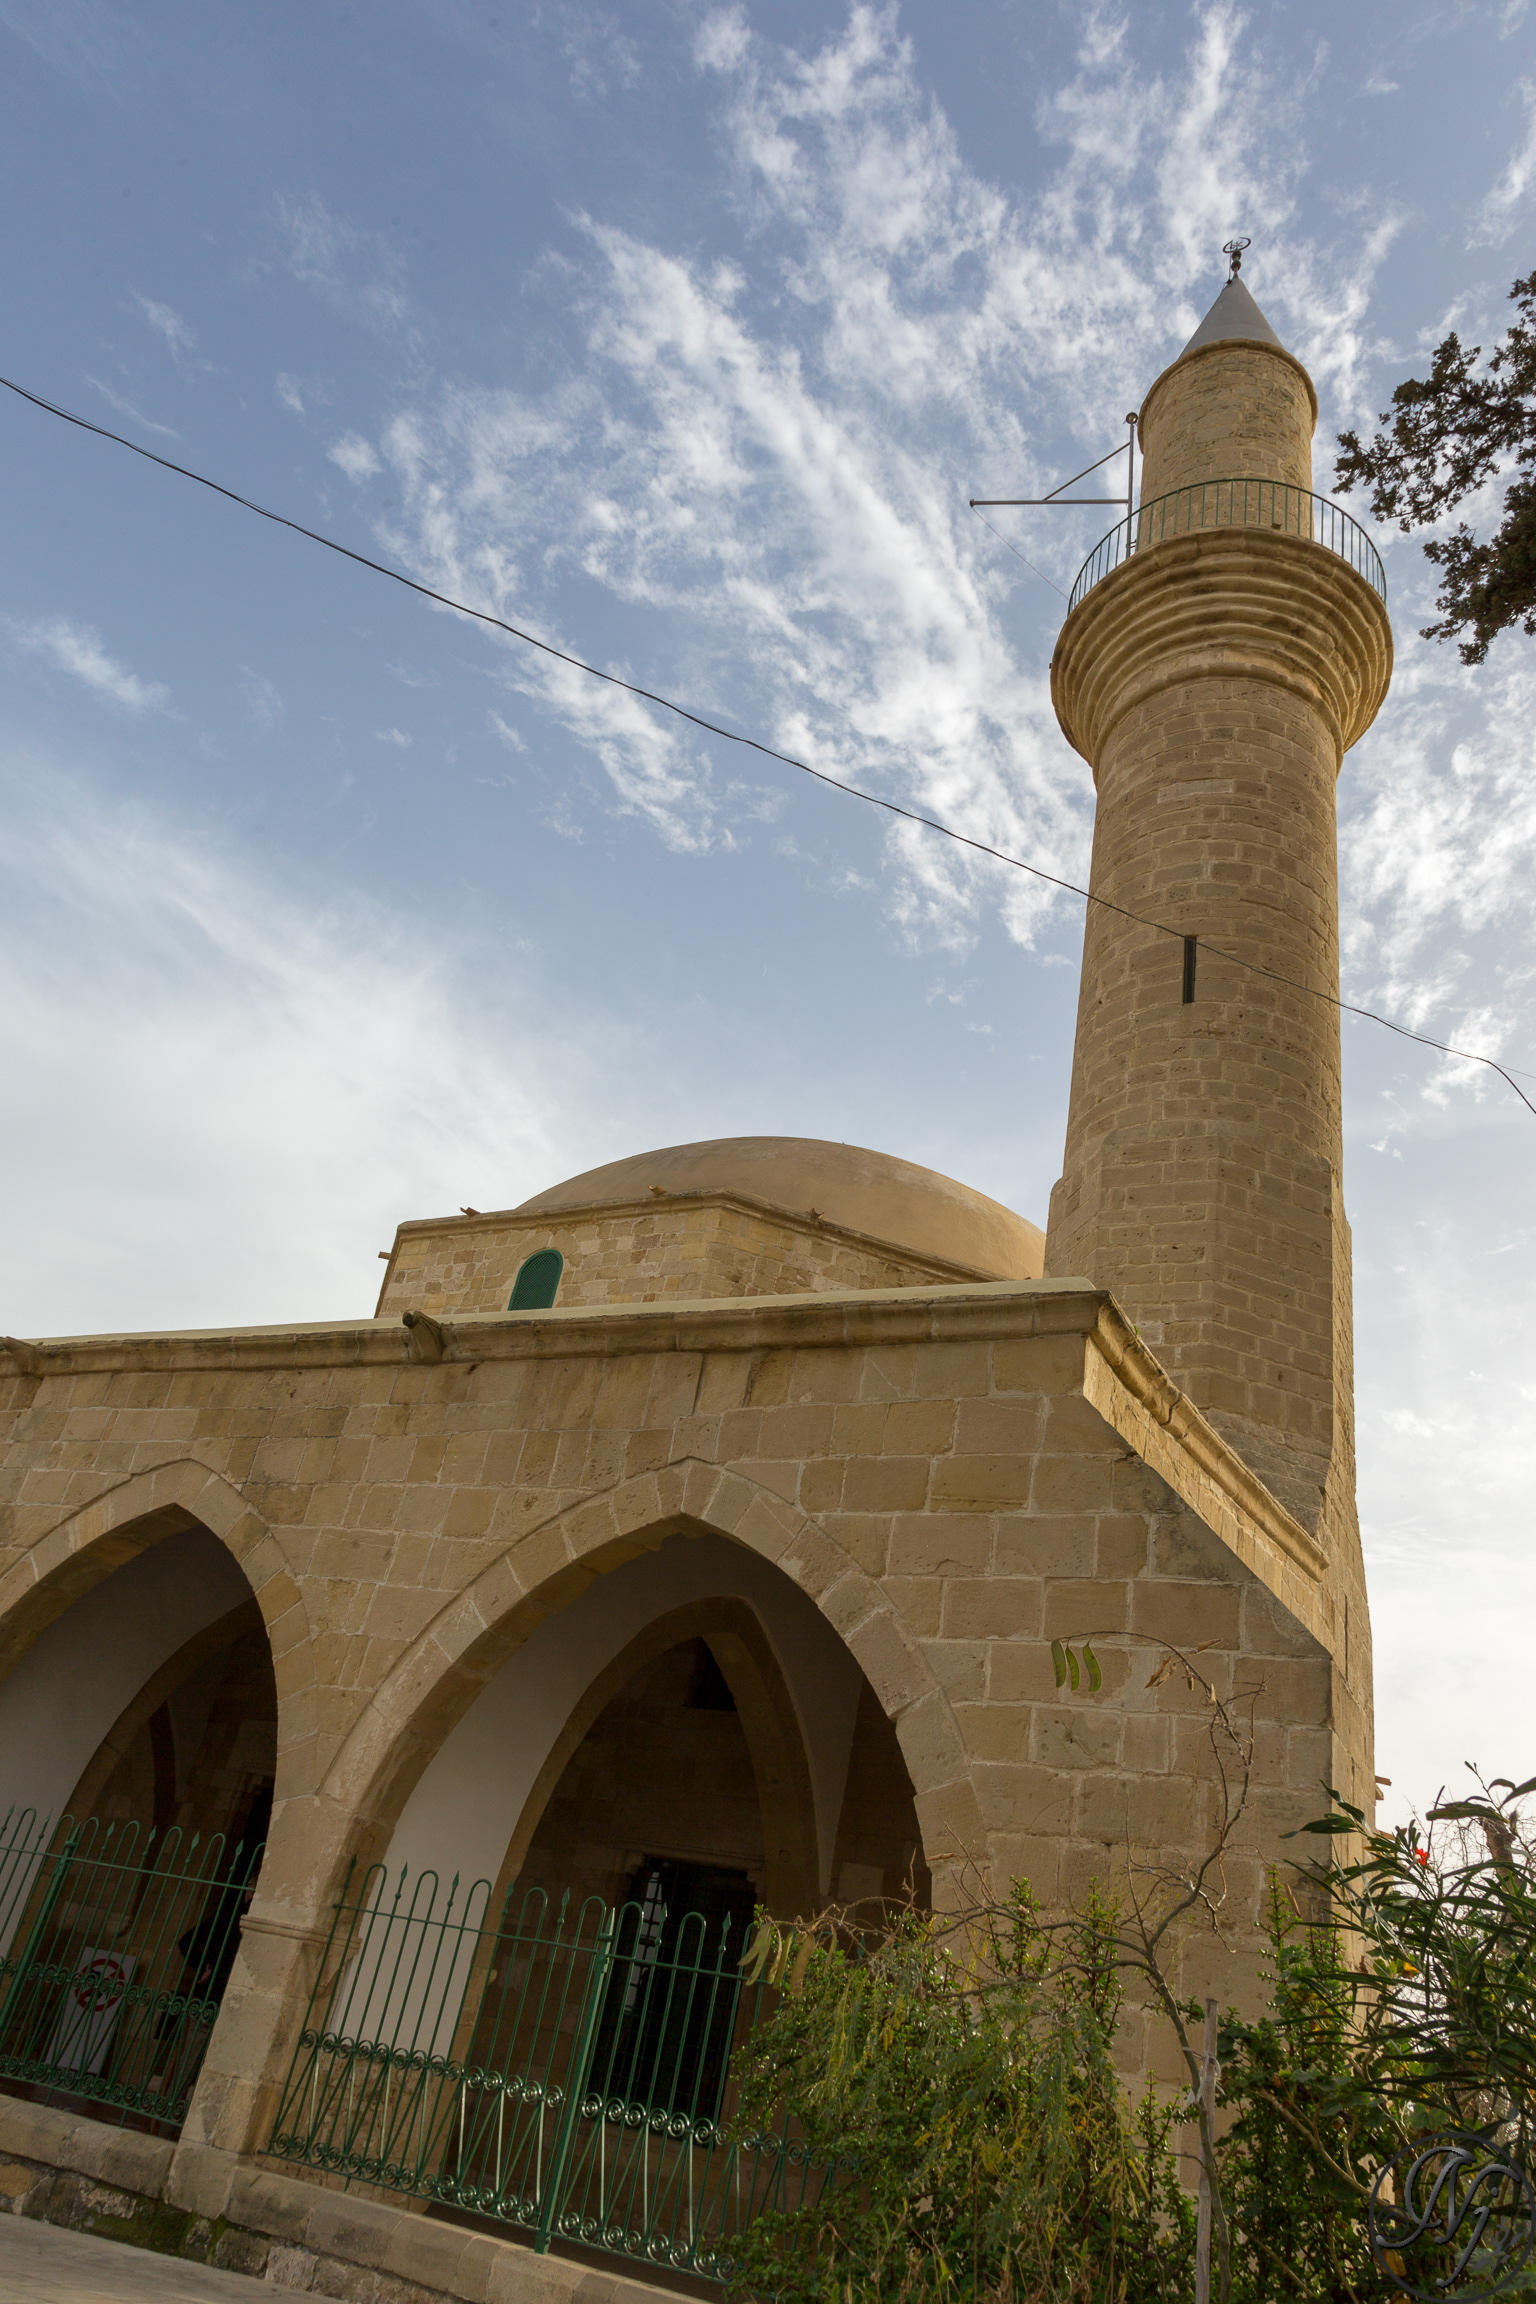 Nick john hala sultan tekke hala sultan tekke complex is composed of a mosque mausoleum minaret cemetery and living quarters for men and women the term tekke convent applies to thecheapjerseys Gallery